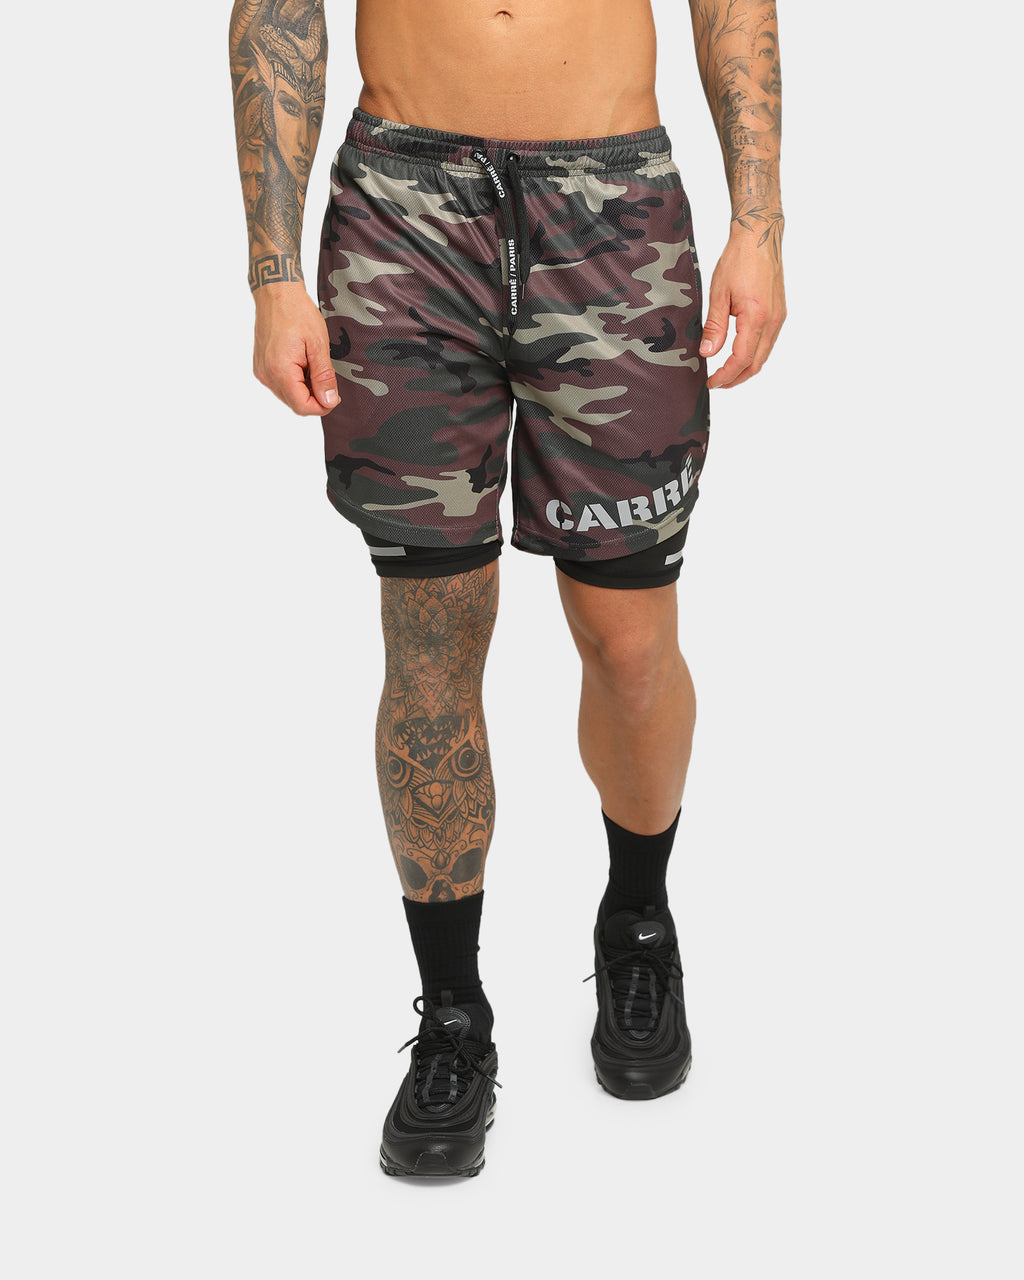 Carré Momentum Active Short Camo/Black